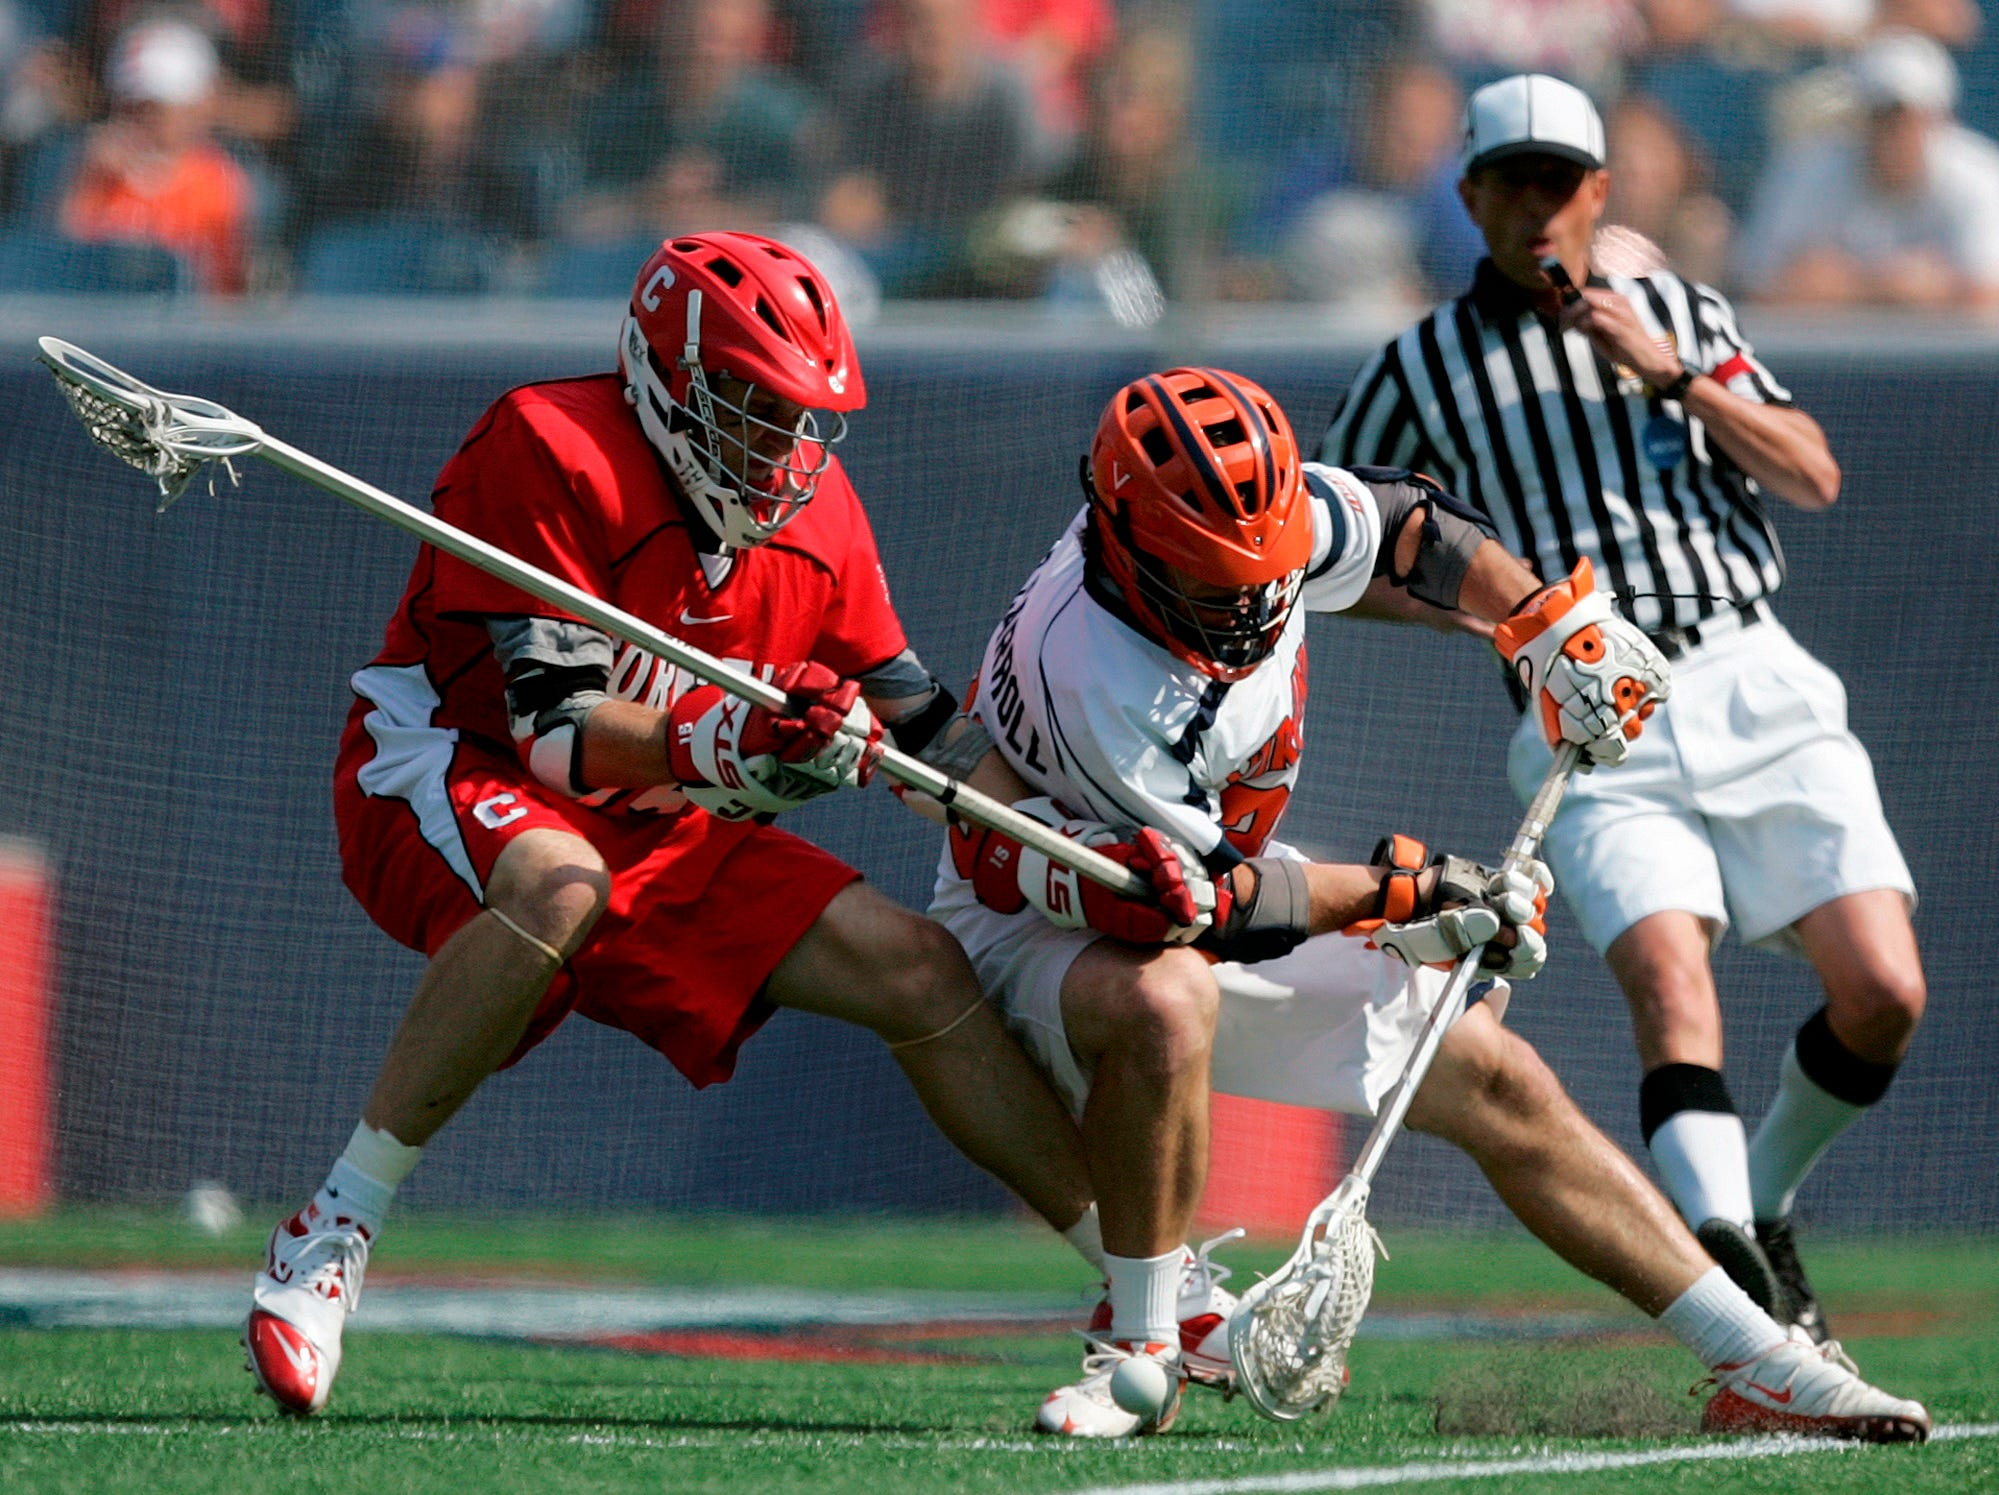 Virginia's Brian Carroll, right, keeps the ball inbounds against Cornell's Michael Howe, in the second quarter of an NCAA Division 1 Men's lacrosse  semifinal game in Foxborough, Mass., Saturday, May 23, 2009.